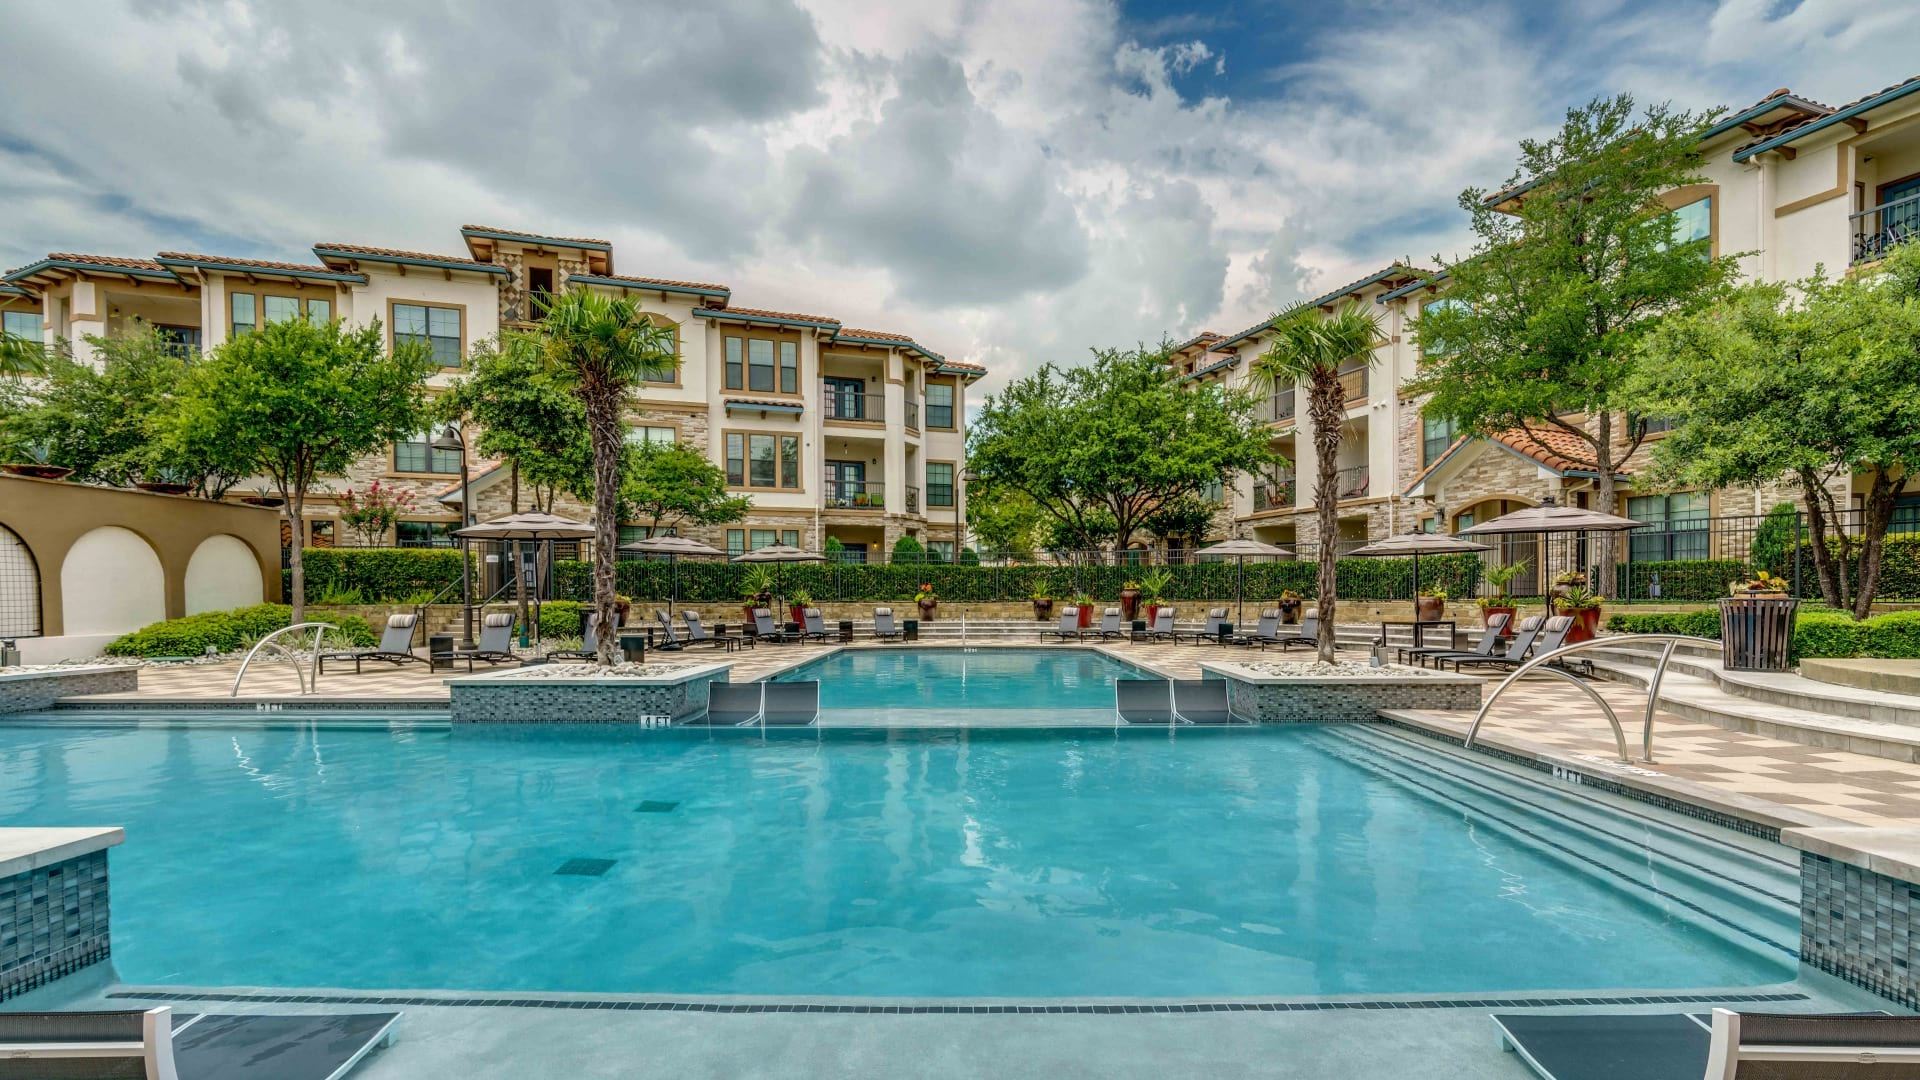 Irving apartments with swimming pool